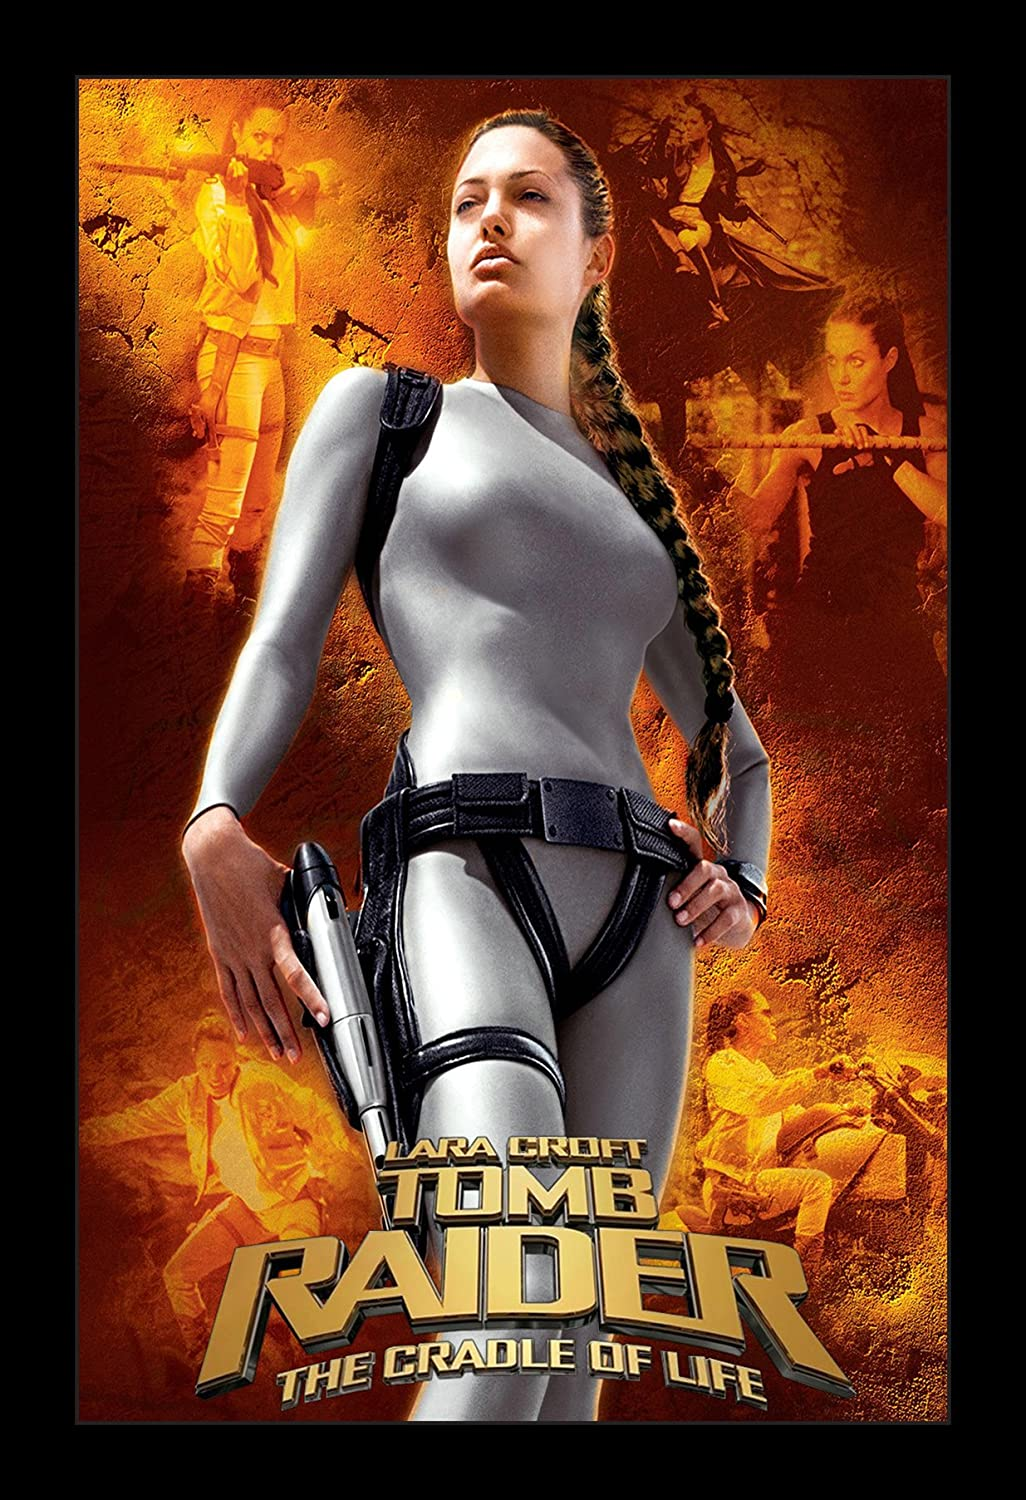 Lara Croft Tomb Raider The Cradle for Life - 11x17 Framed Movie Poster by Wallspace